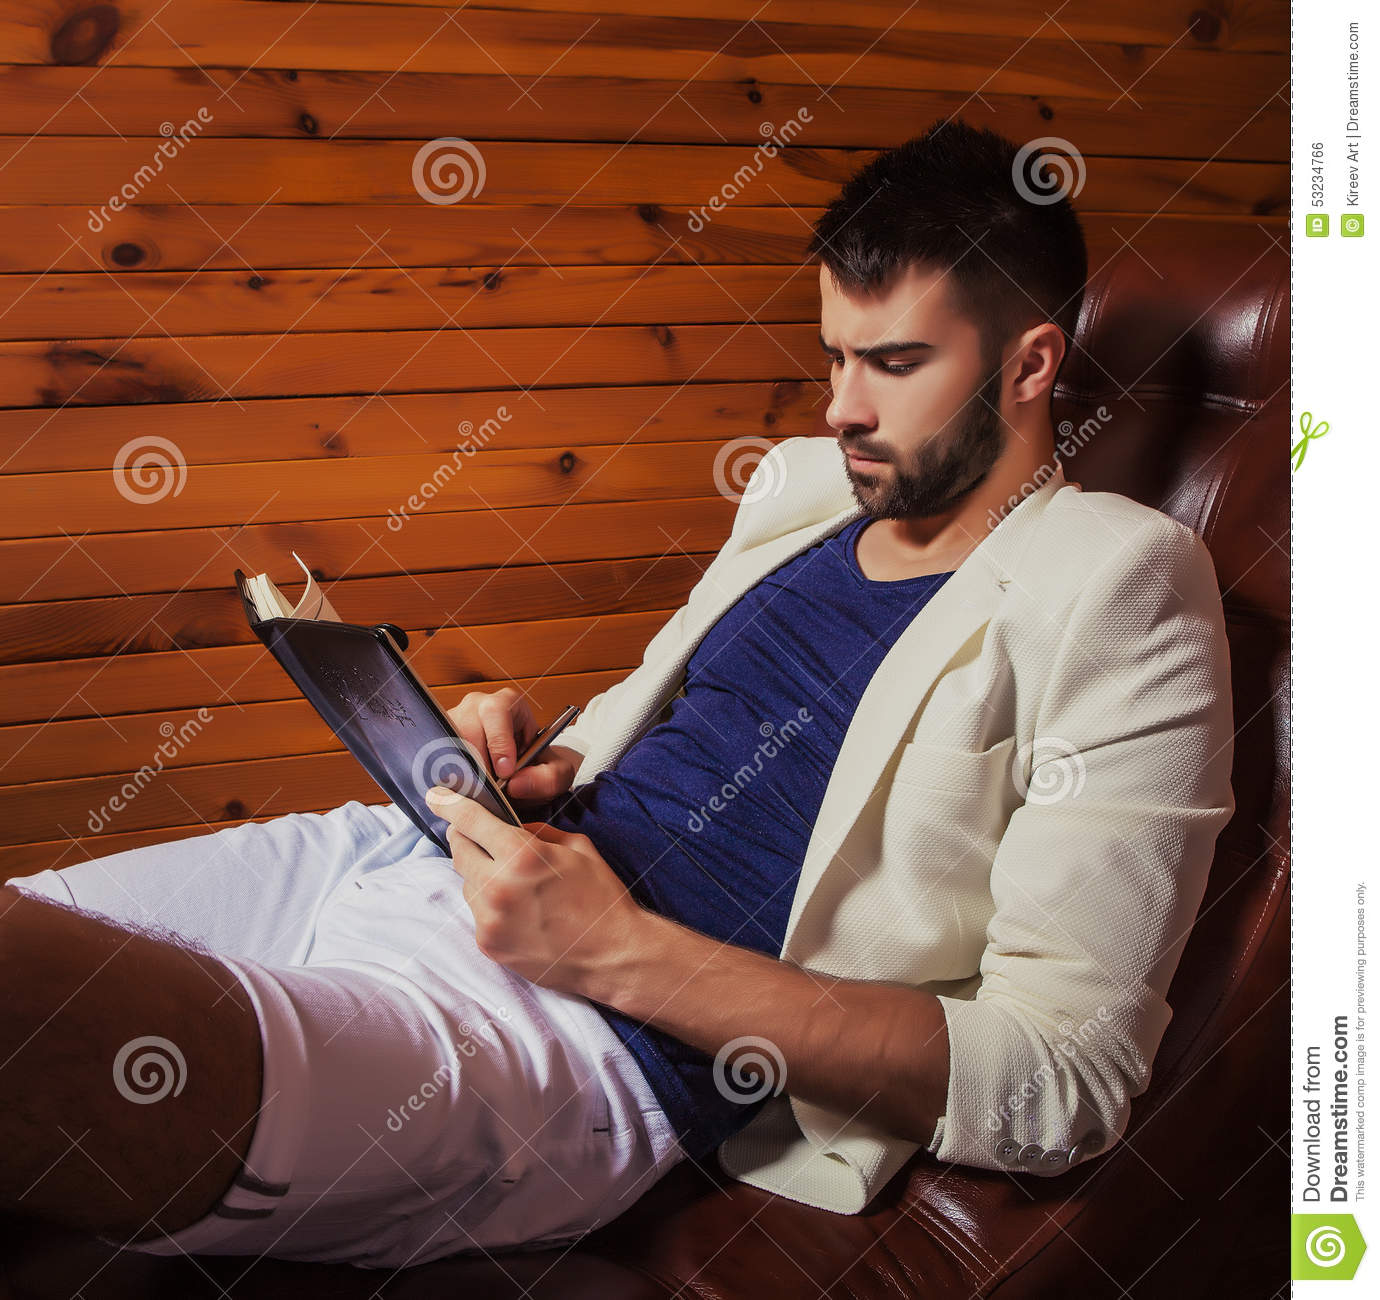 Handsome young man in white suit relaxing on luxury sofa with diary.